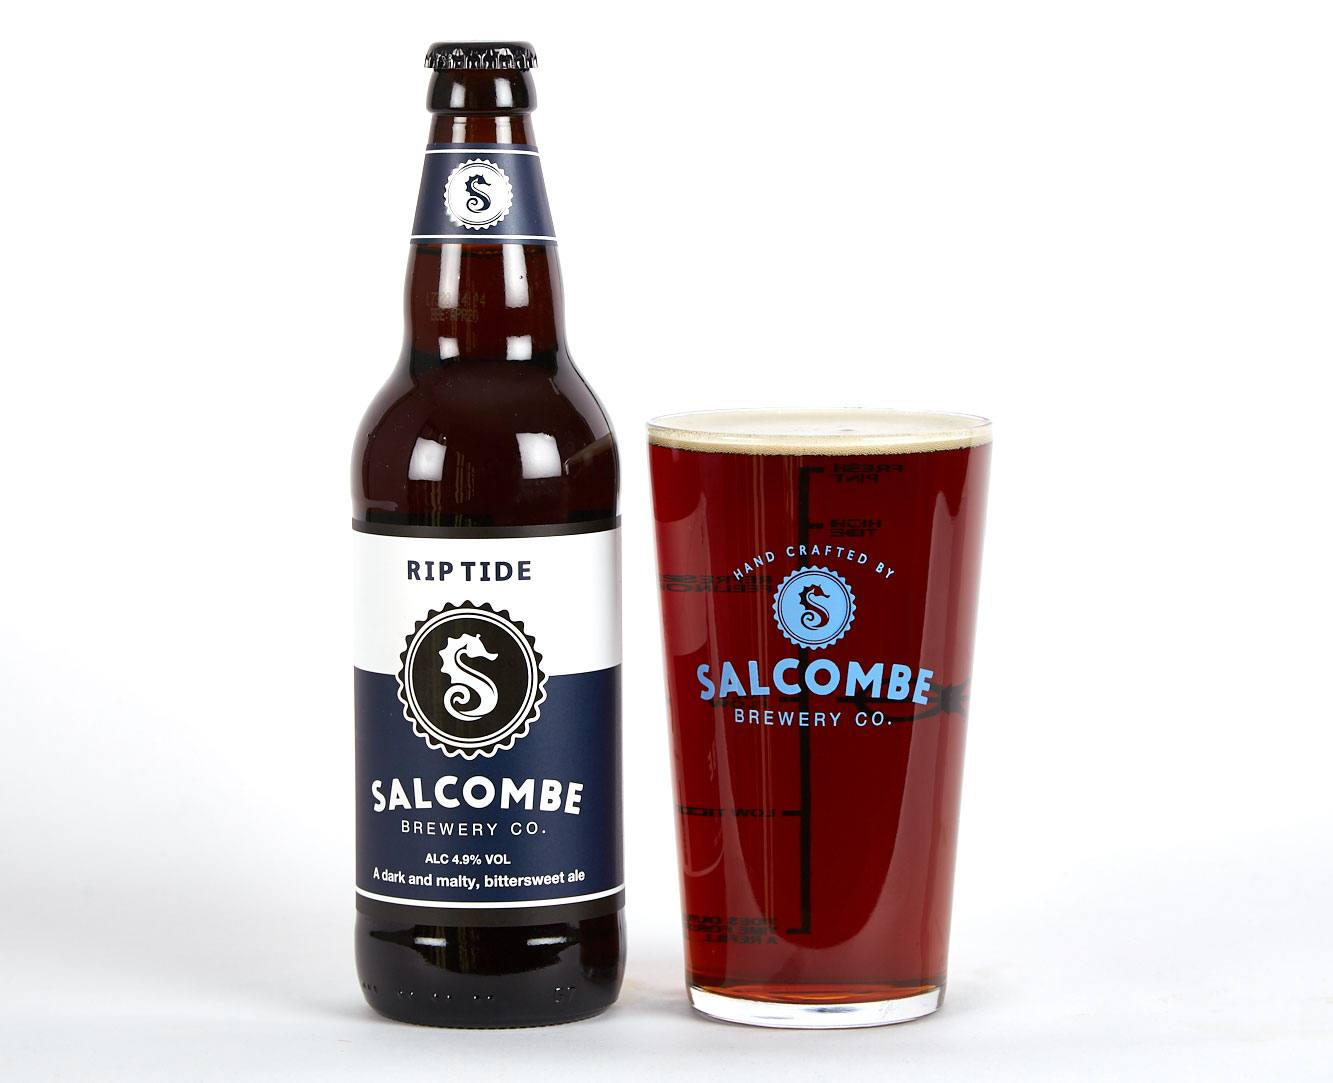 Winter Warmer beer from Salcombe Brewery